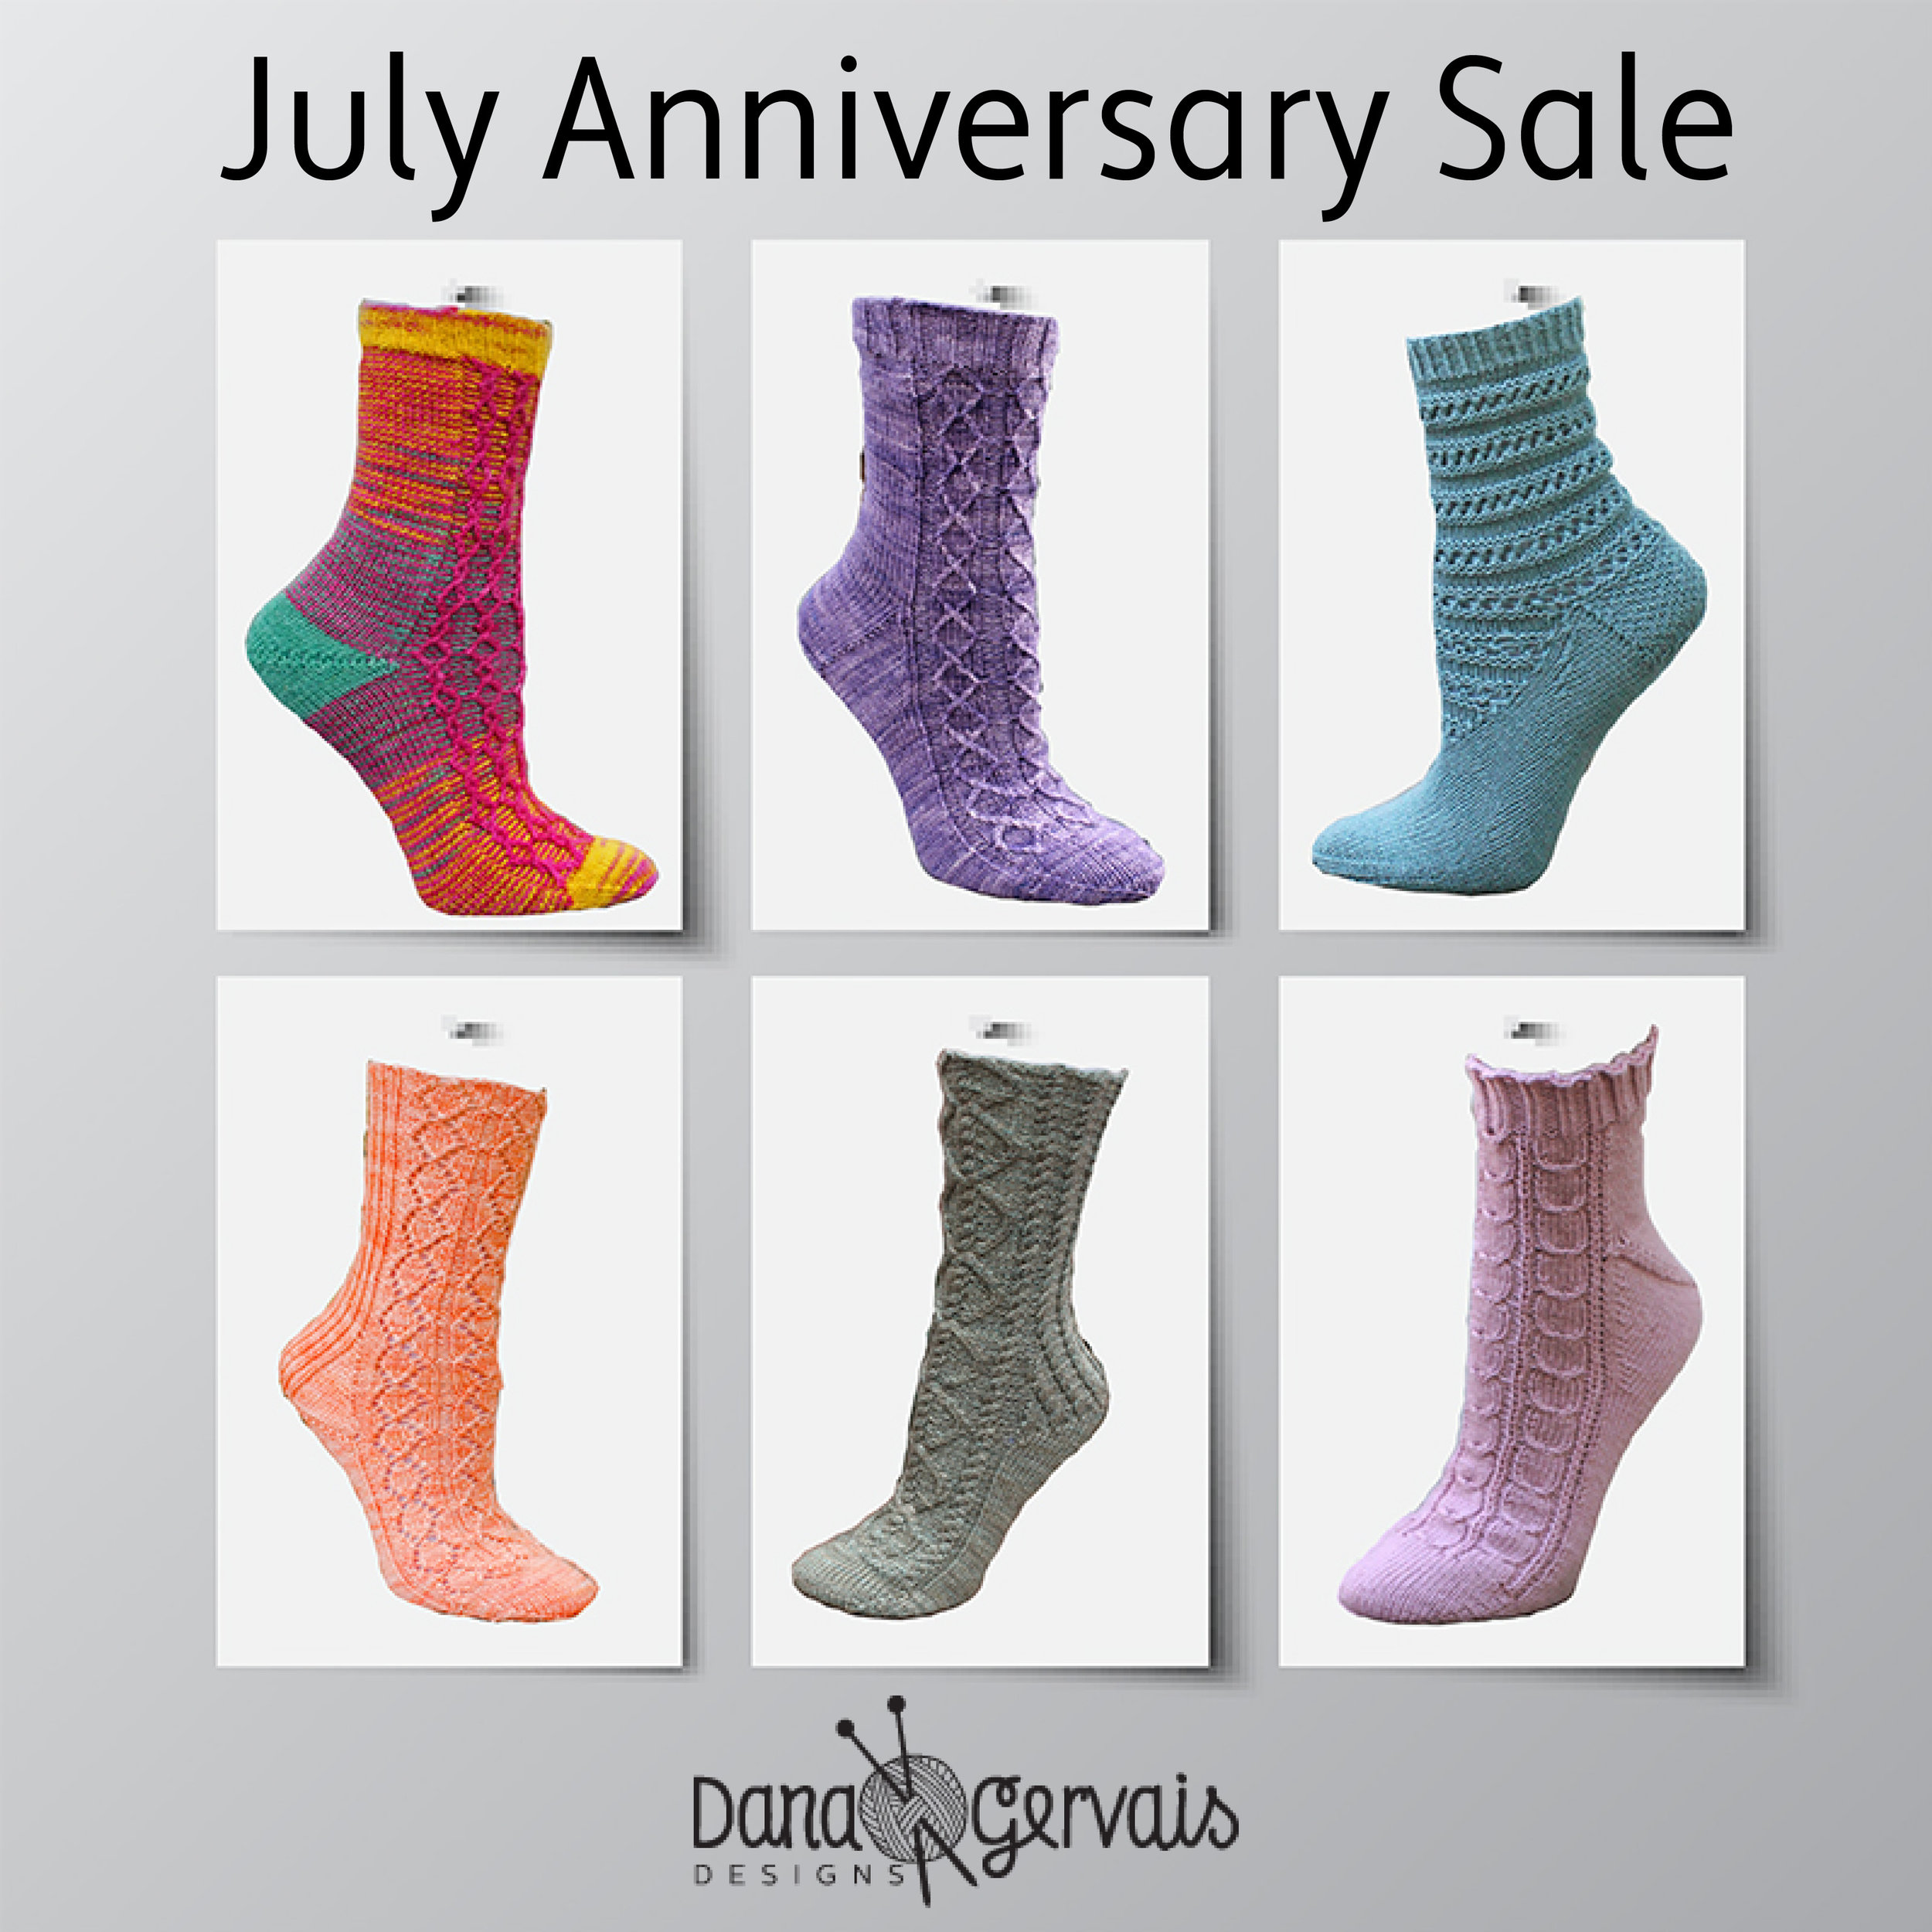 july anniversary sale.jpg